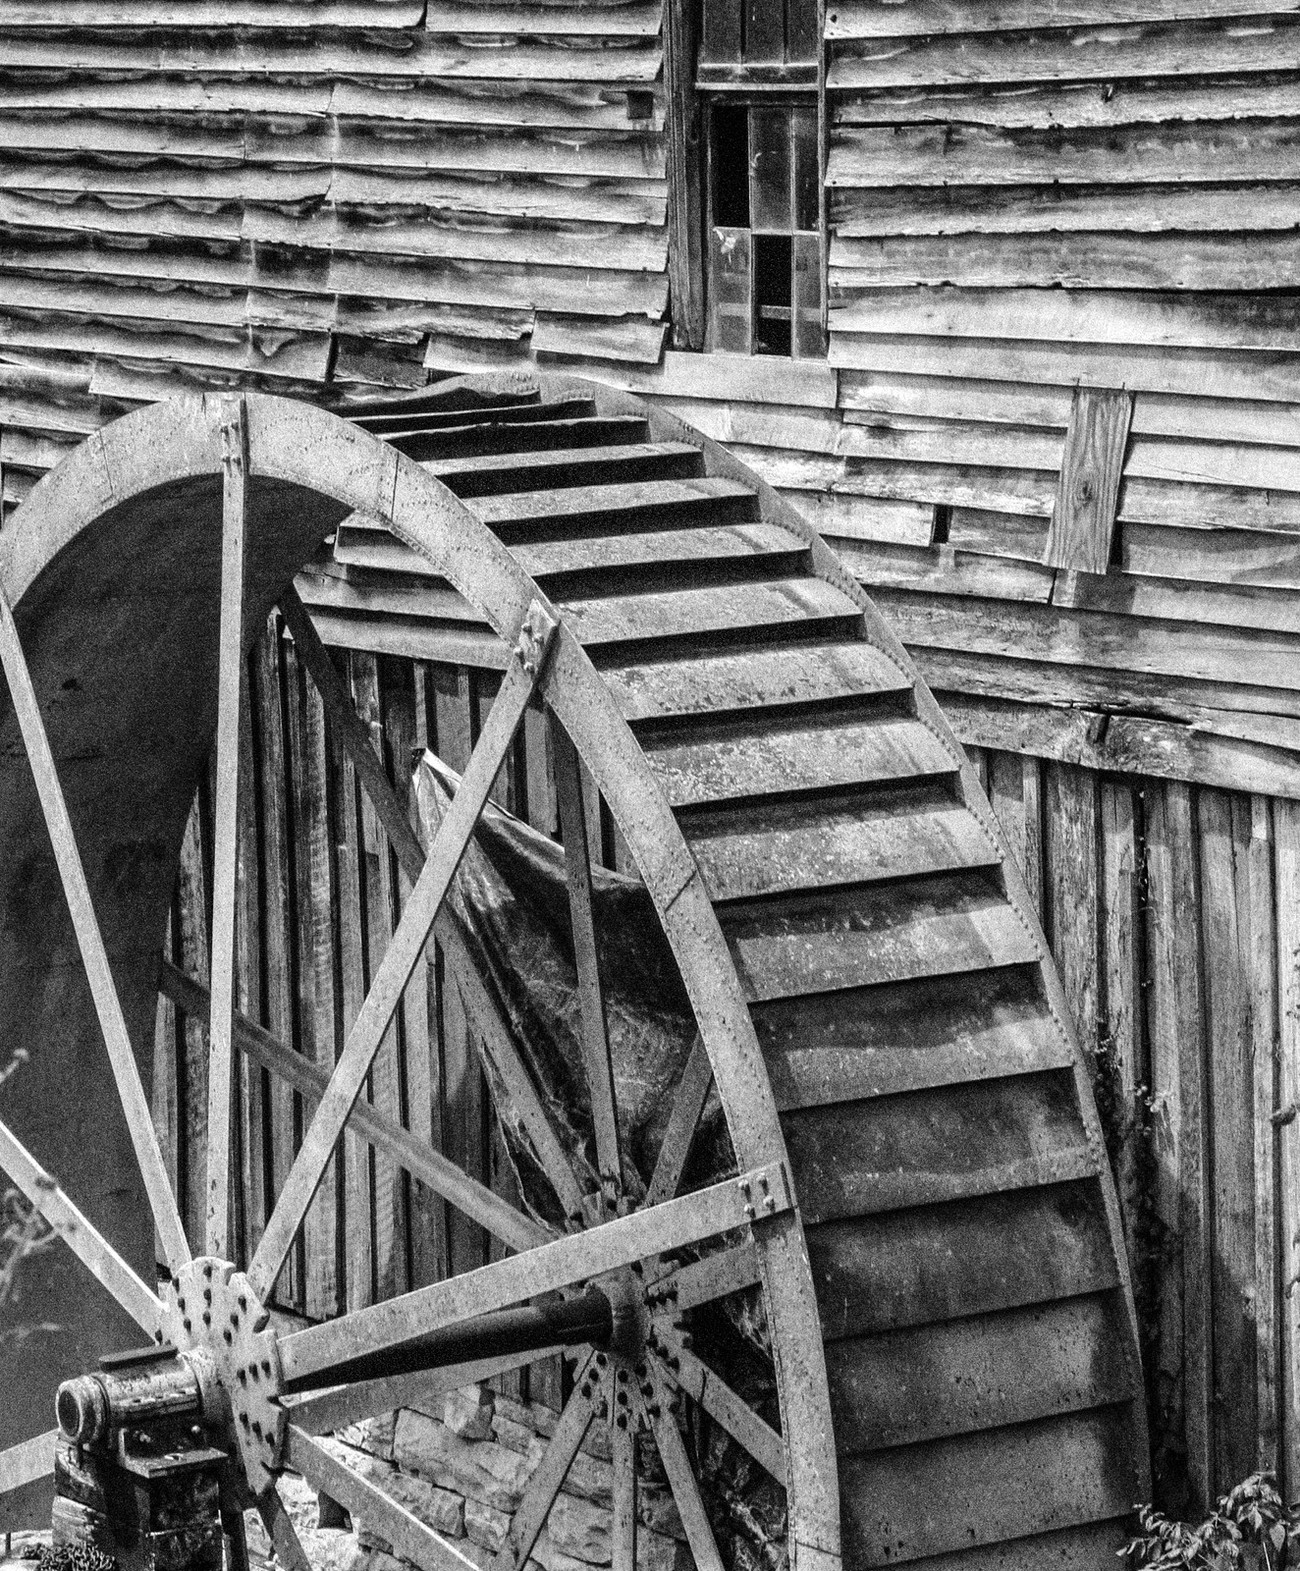 This was corn meal mill near Abington Virginia.  I'm always attracted to an image that shows it's age and will be there forever as a memory of the past.